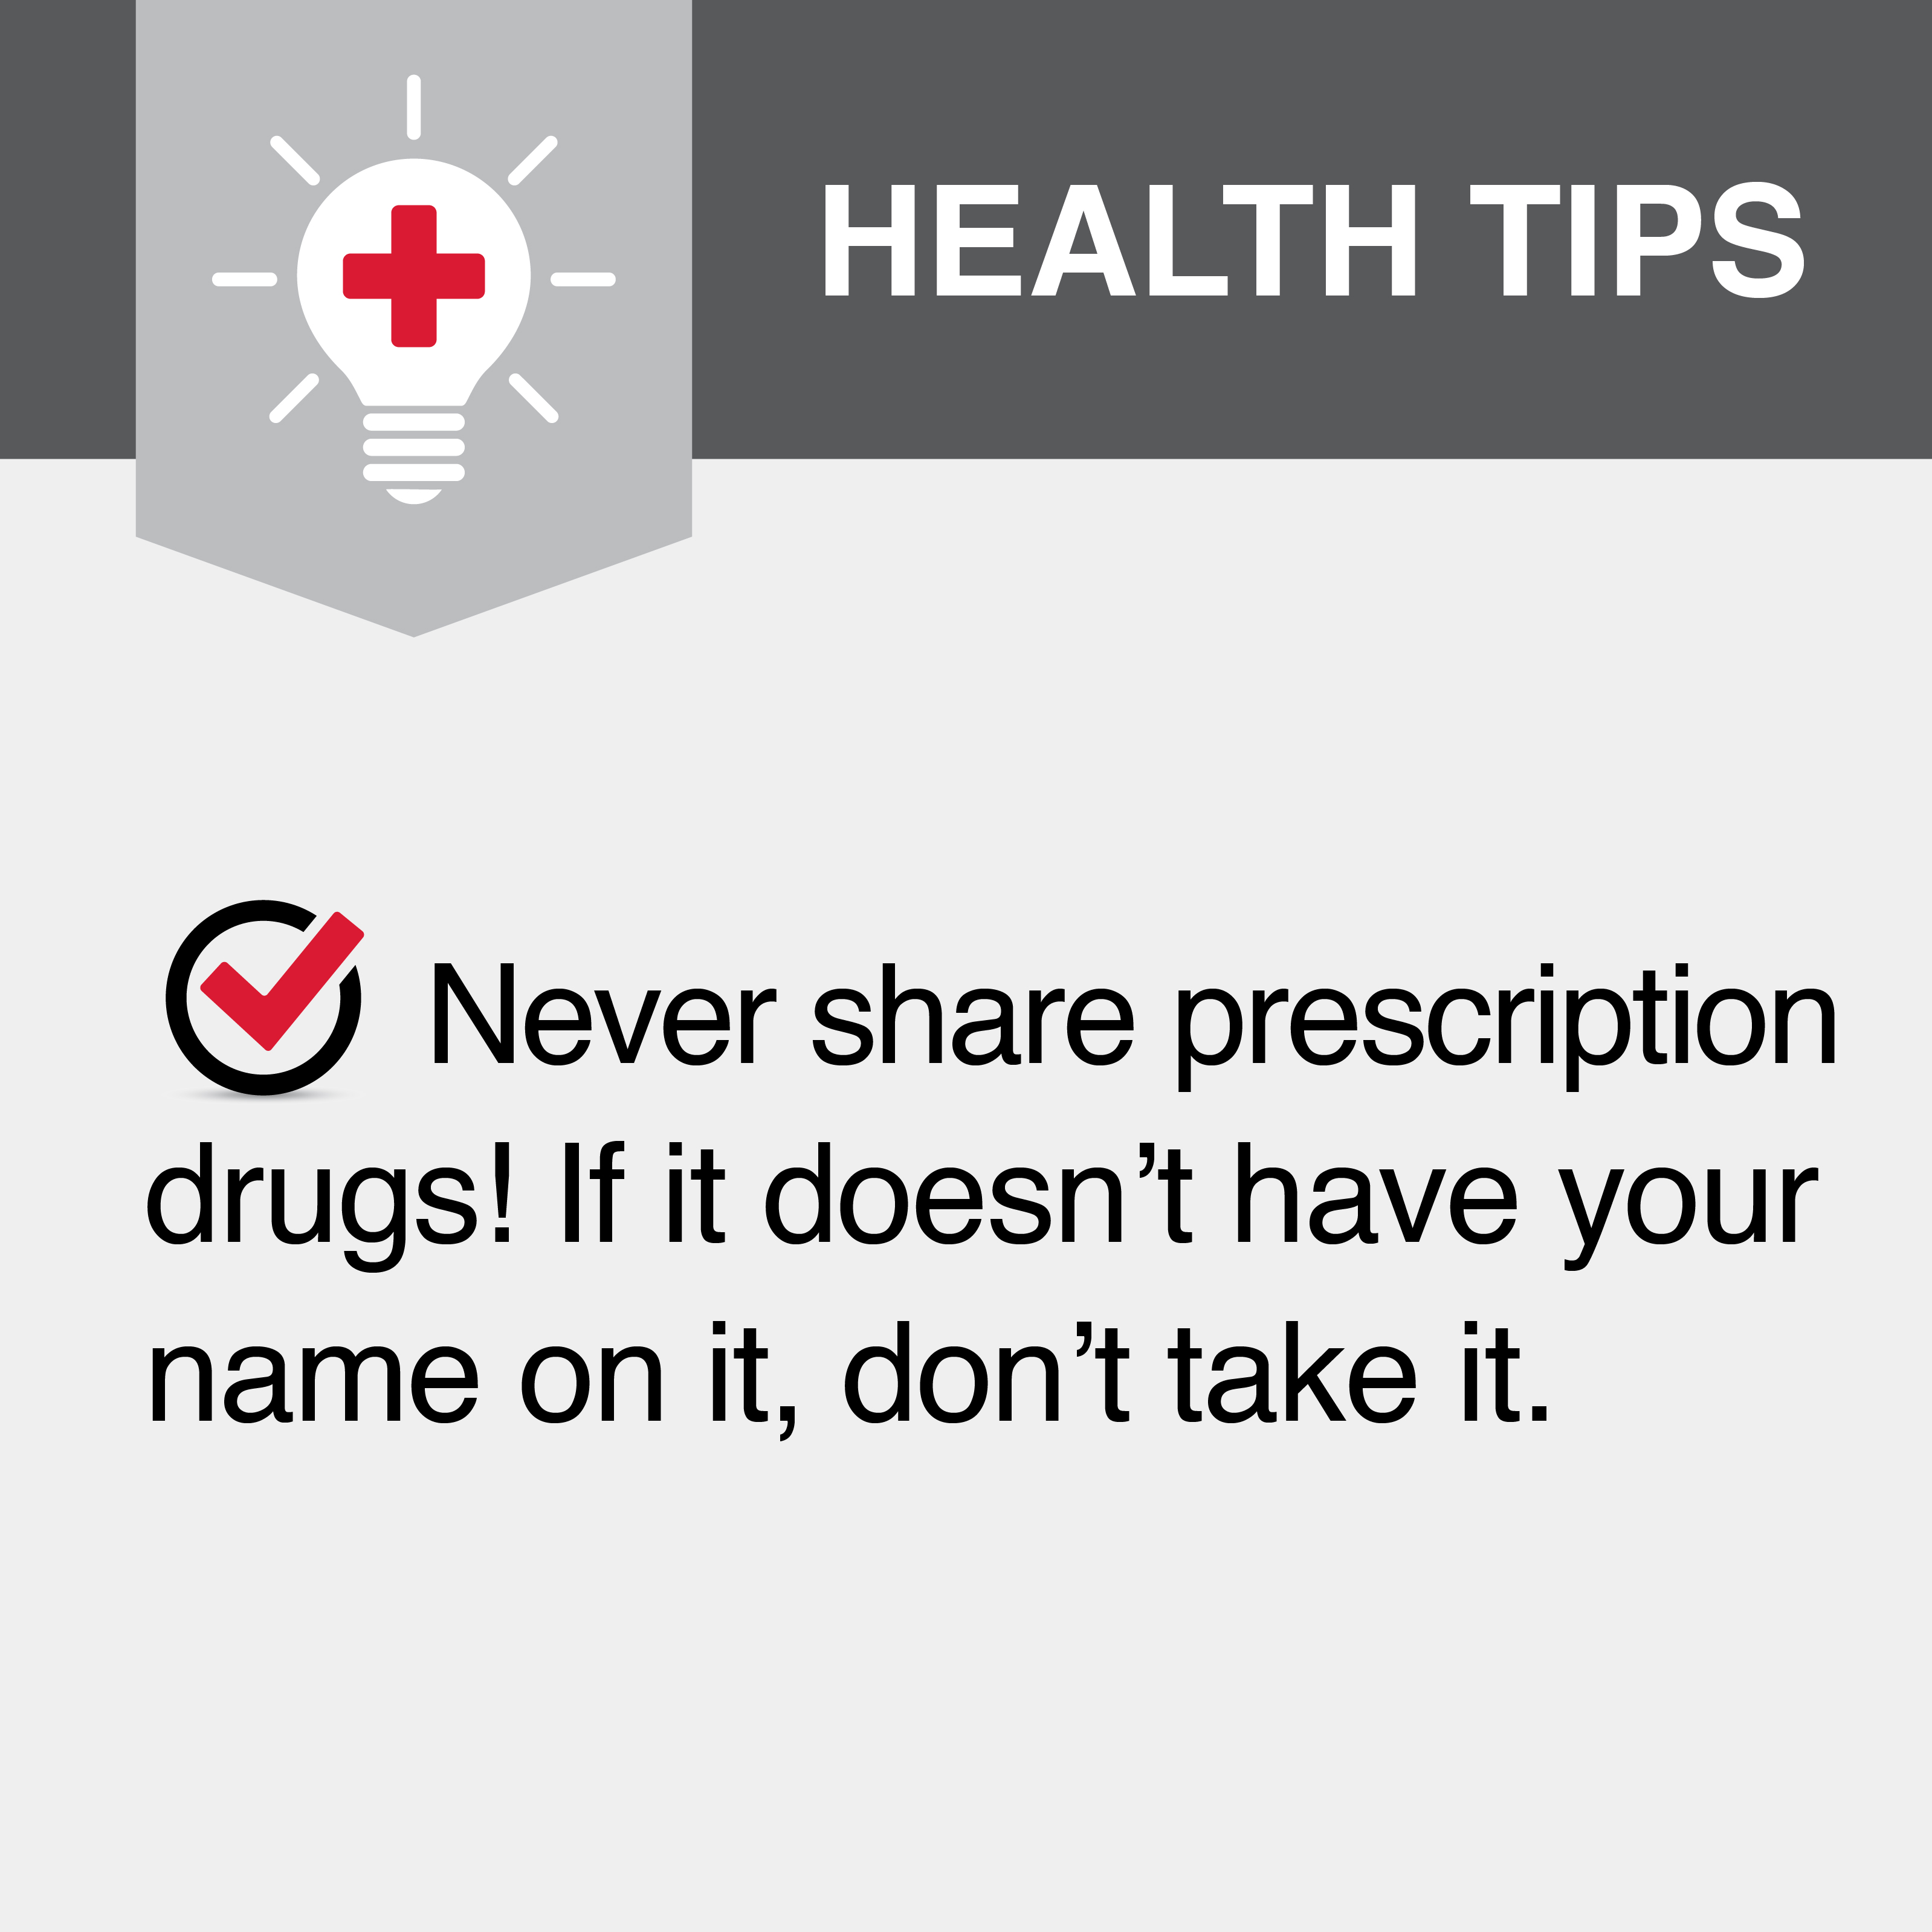 Never share prescription drugs! If it doesn't have your name on it, don't take it.